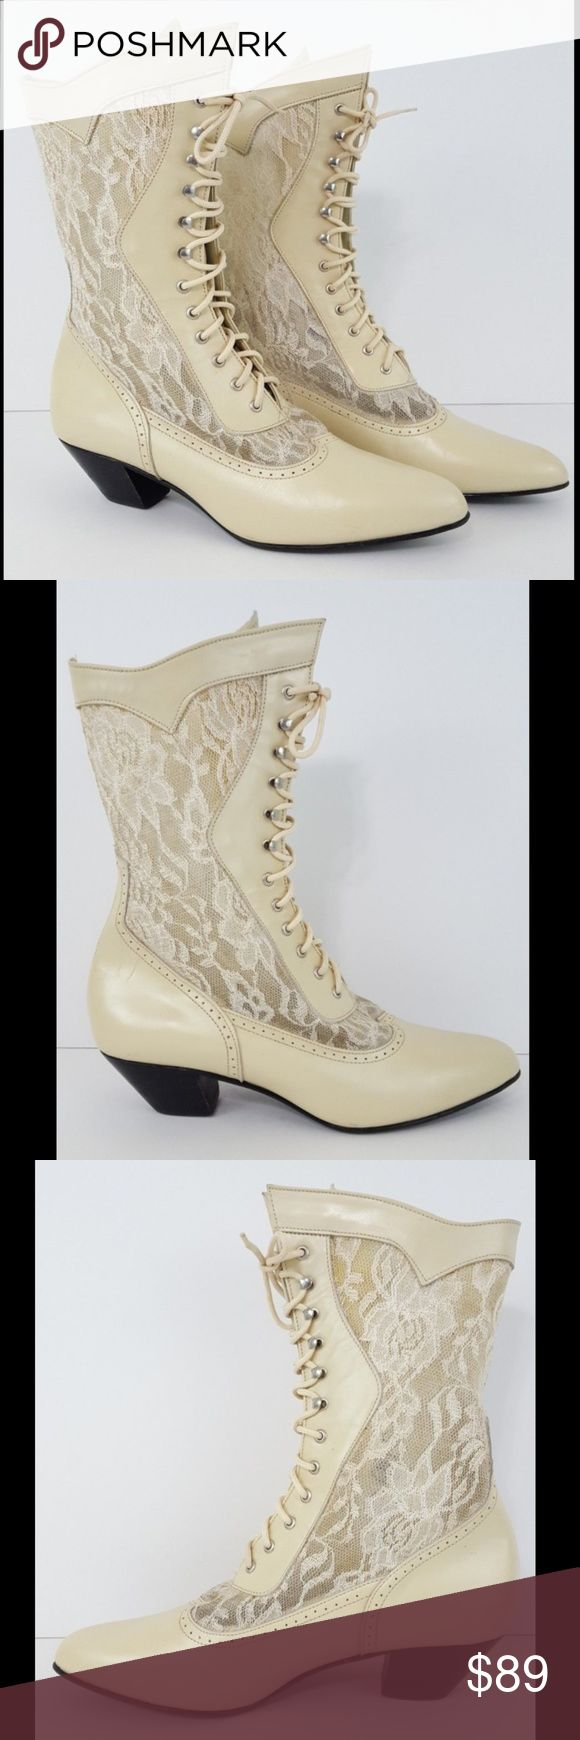 "{Oak Tree Farms} Victorian Lace-up Romantic Boots Oak Tree Farms Boots Size 9 Women's Cream Ivory Lace Cathedral Victorian Wedding  Very good condition with minimal to light wear. Please see pics.  Outsole at widest = 3"" Heel height = 1.75"" Total height from floor = 10.5""  Slanted wedge heel Semi-sheer lace insets  W-SHOE-3399 Oak Tree Farms Shoes Lace Up Boots"